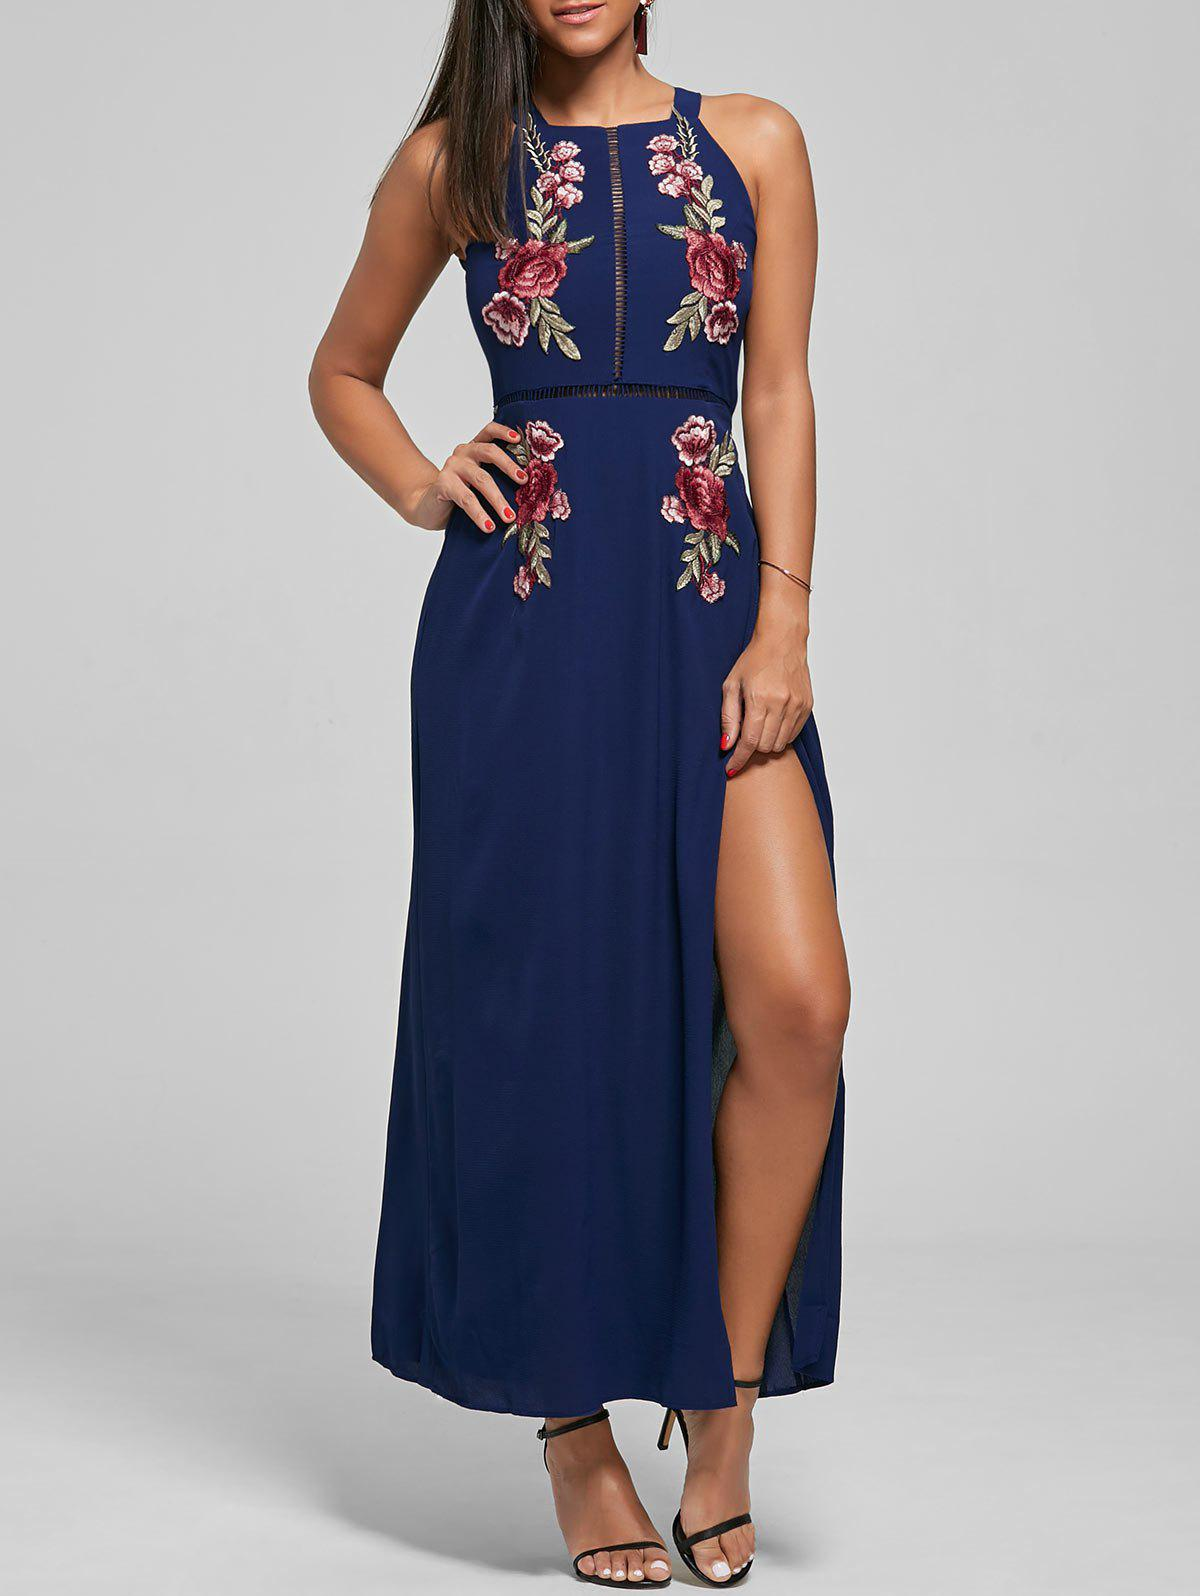 Buy Embroidered Backless Thigh High Slit Maxi Dress